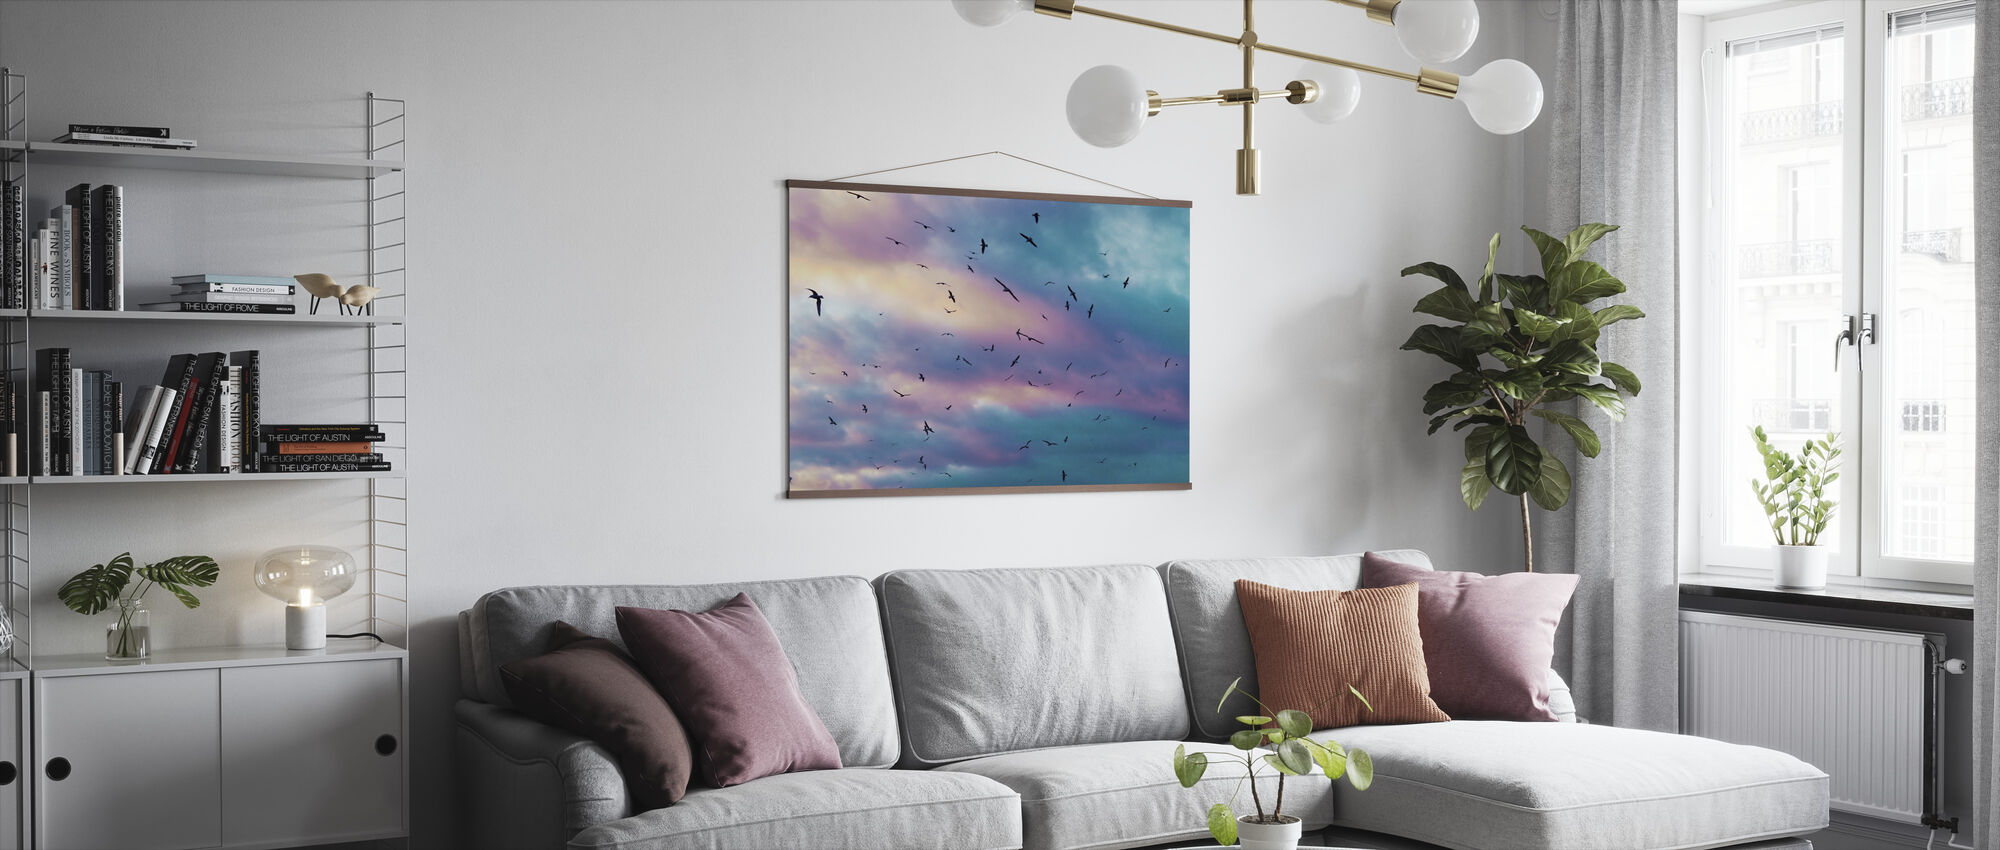 Birds in Colorful Sky - Poster - Living Room